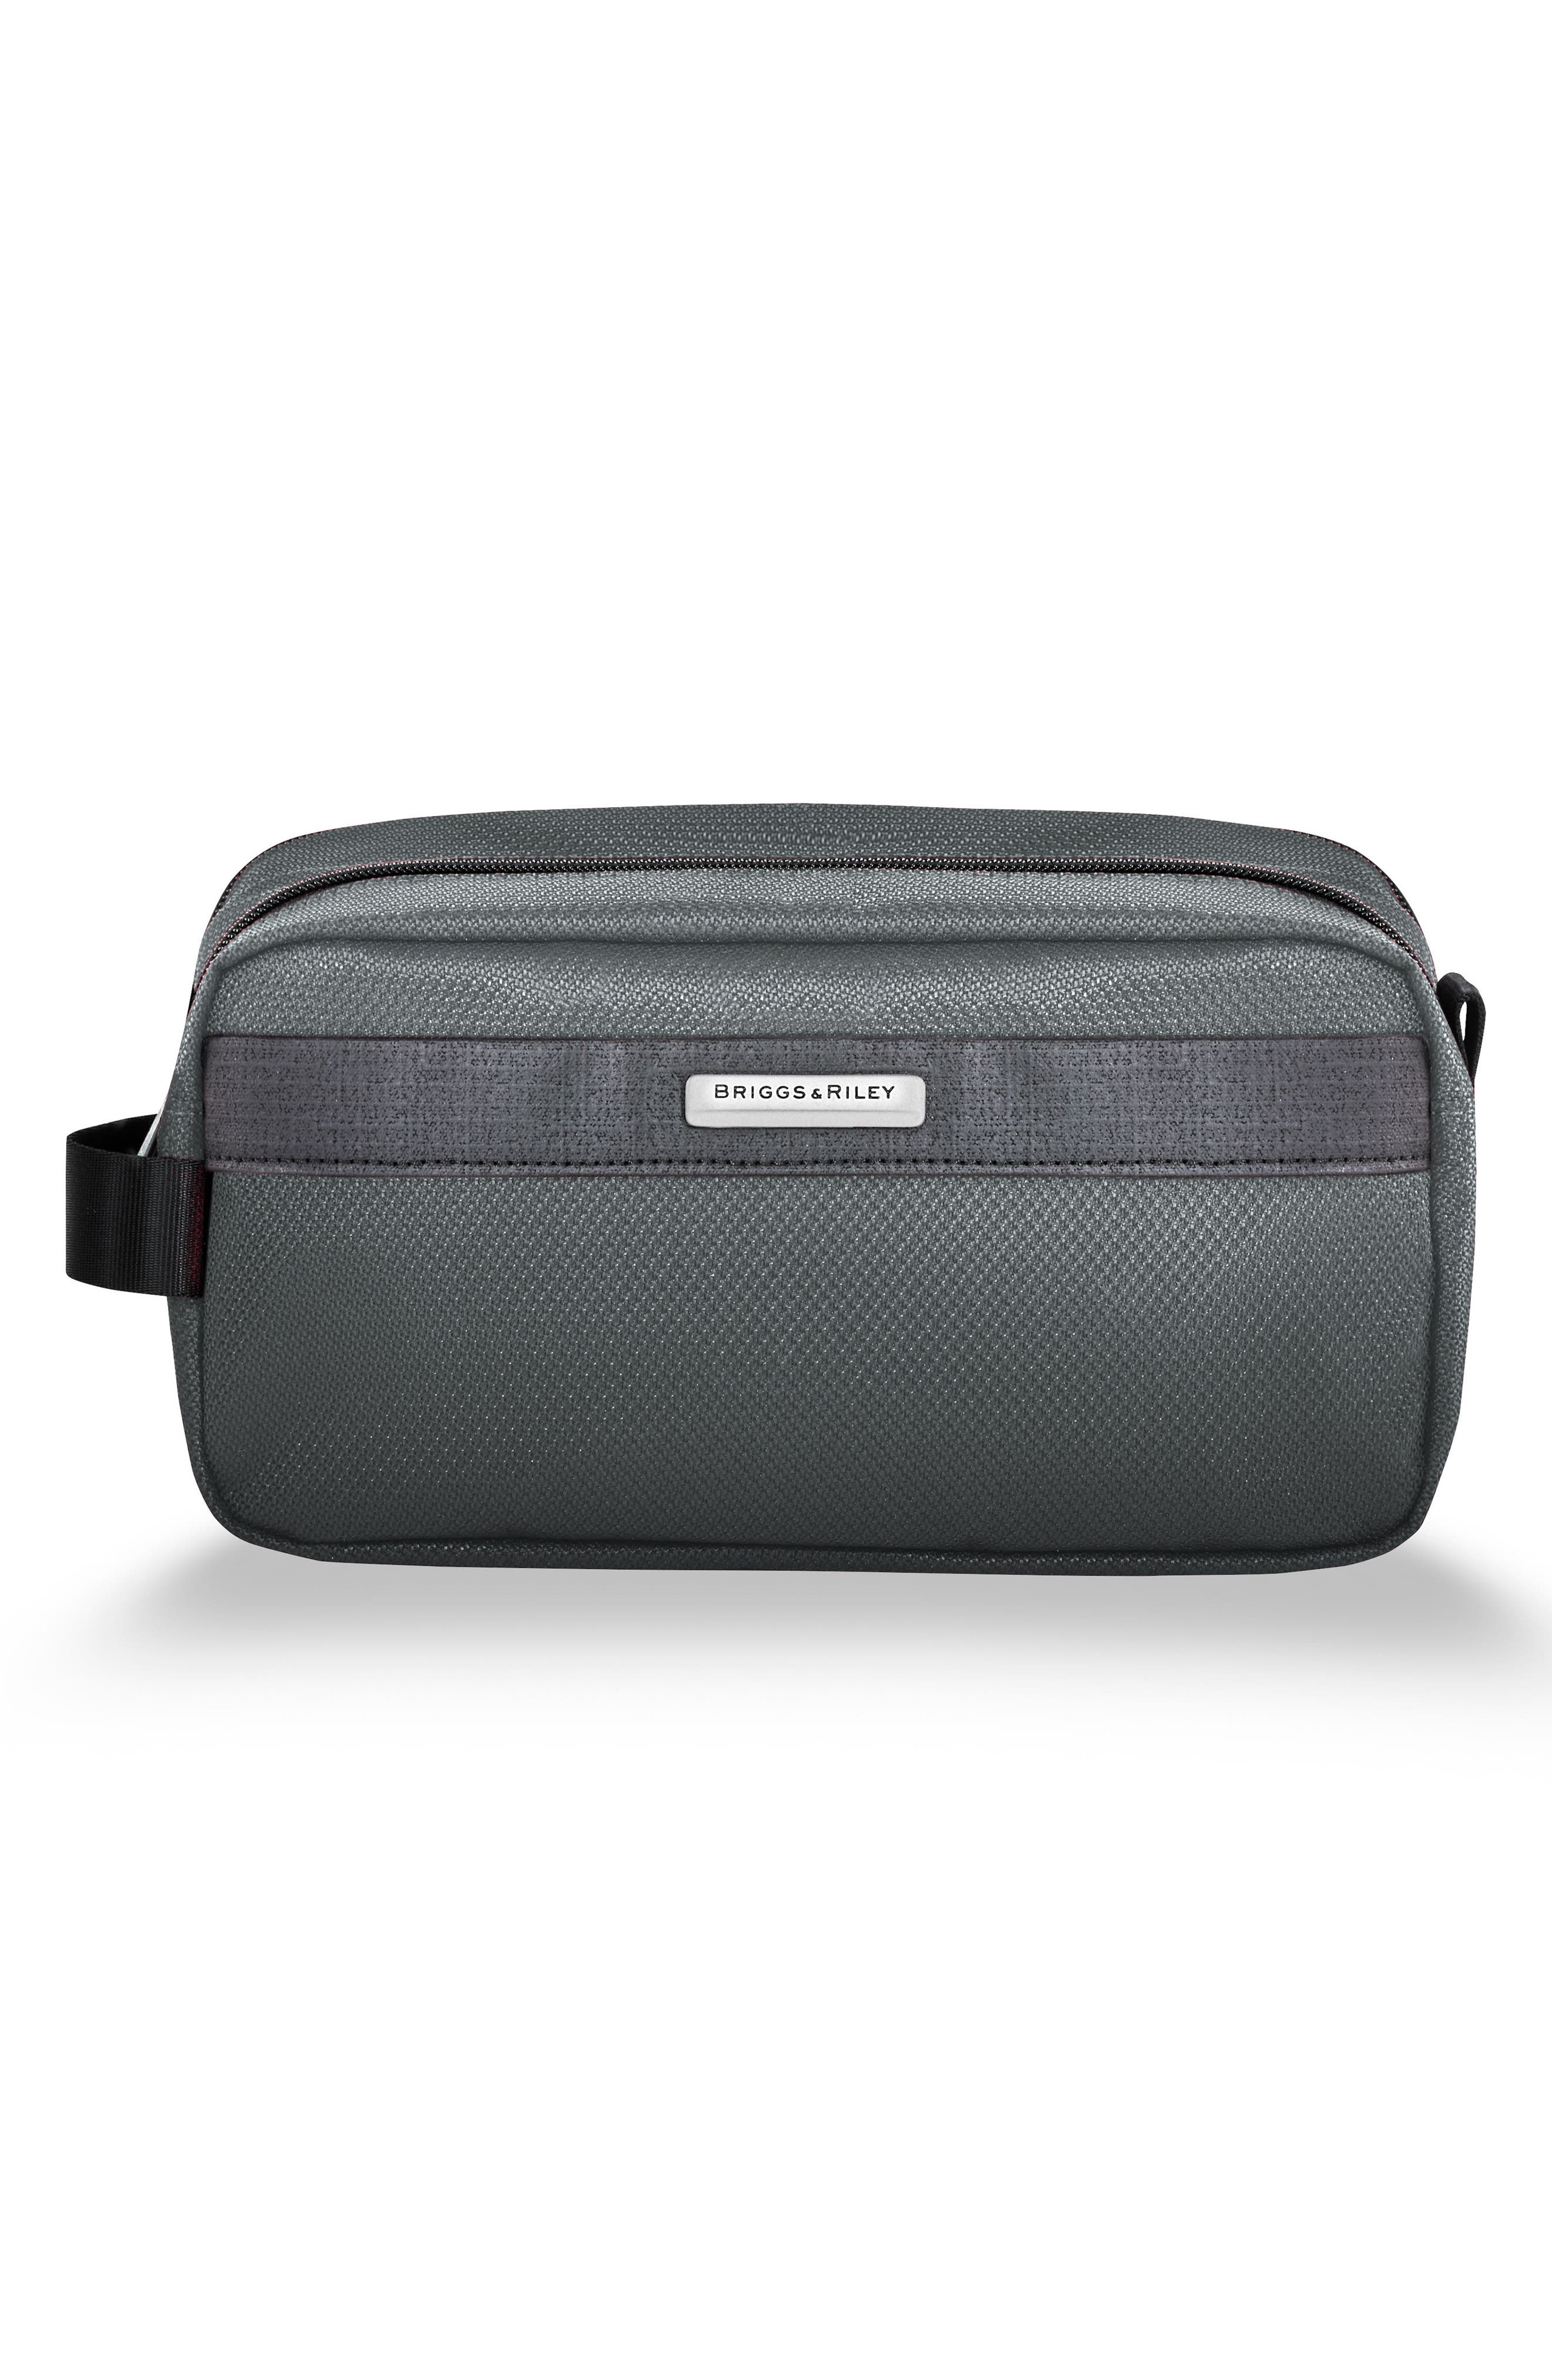 Alternate Image 1 Selected - Briggs & Riley Transcend 400 Toiletry Kit